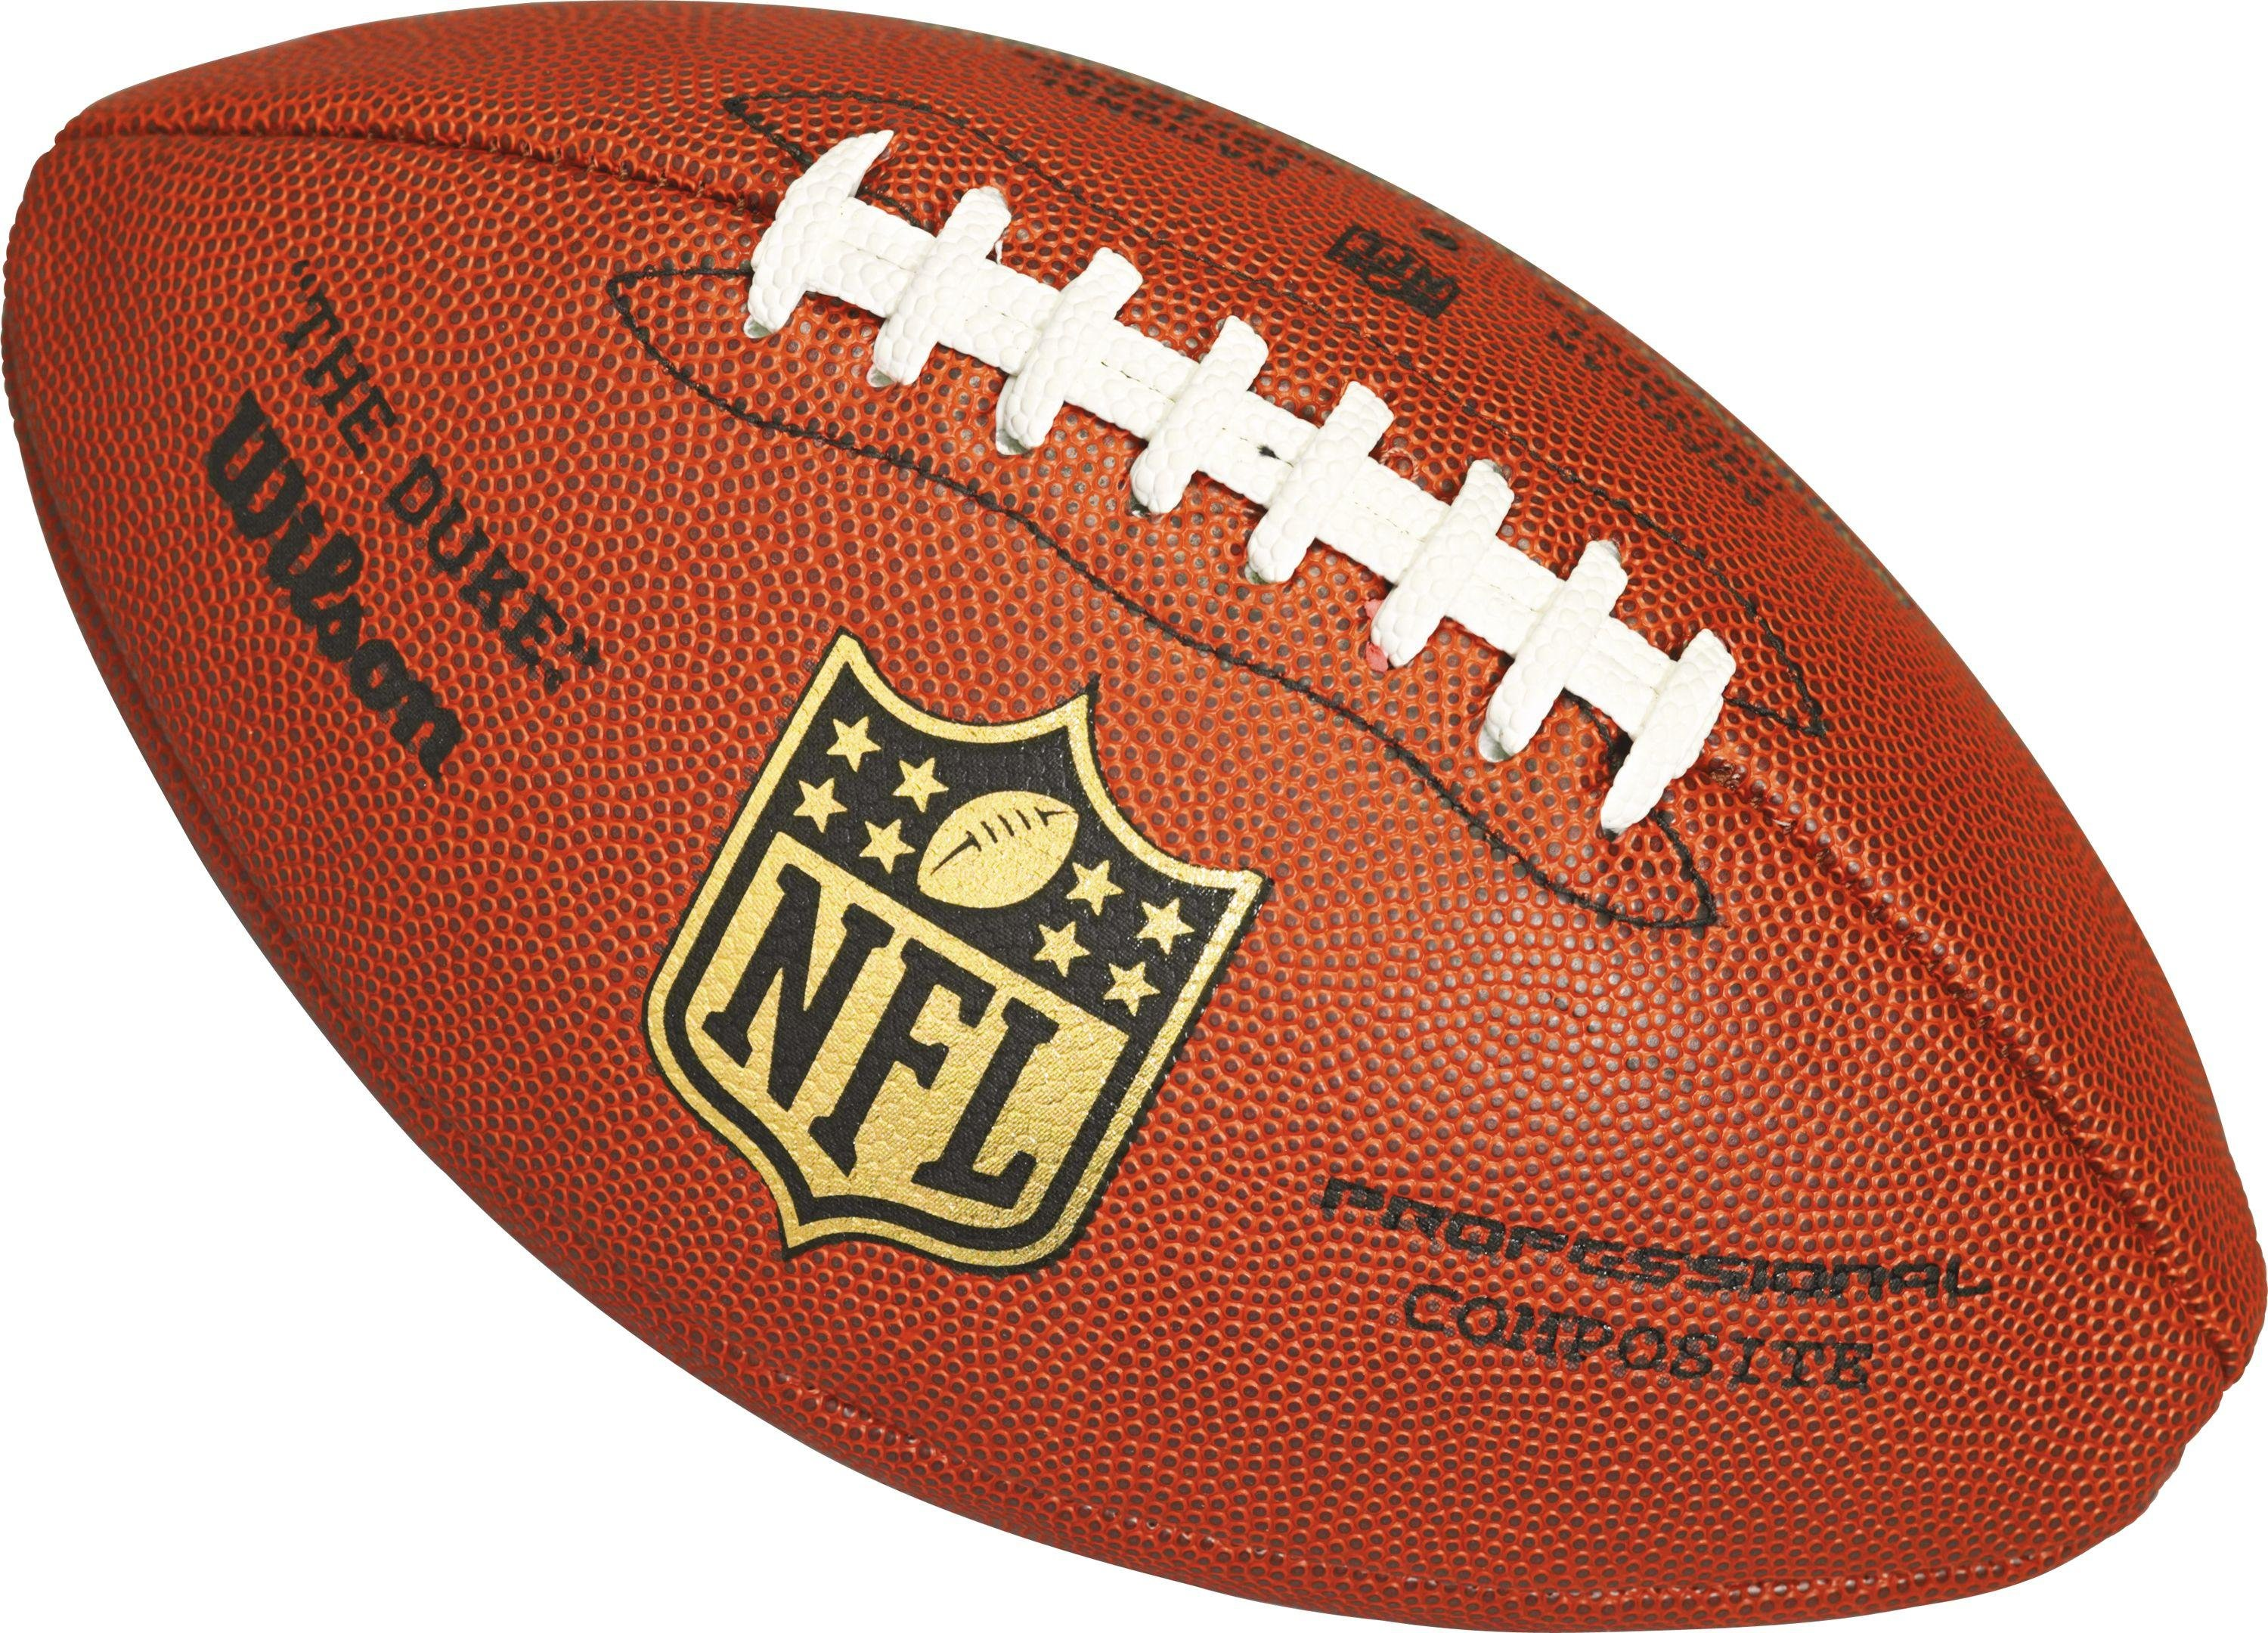 Wilson - The Duke Replica NFL American Football